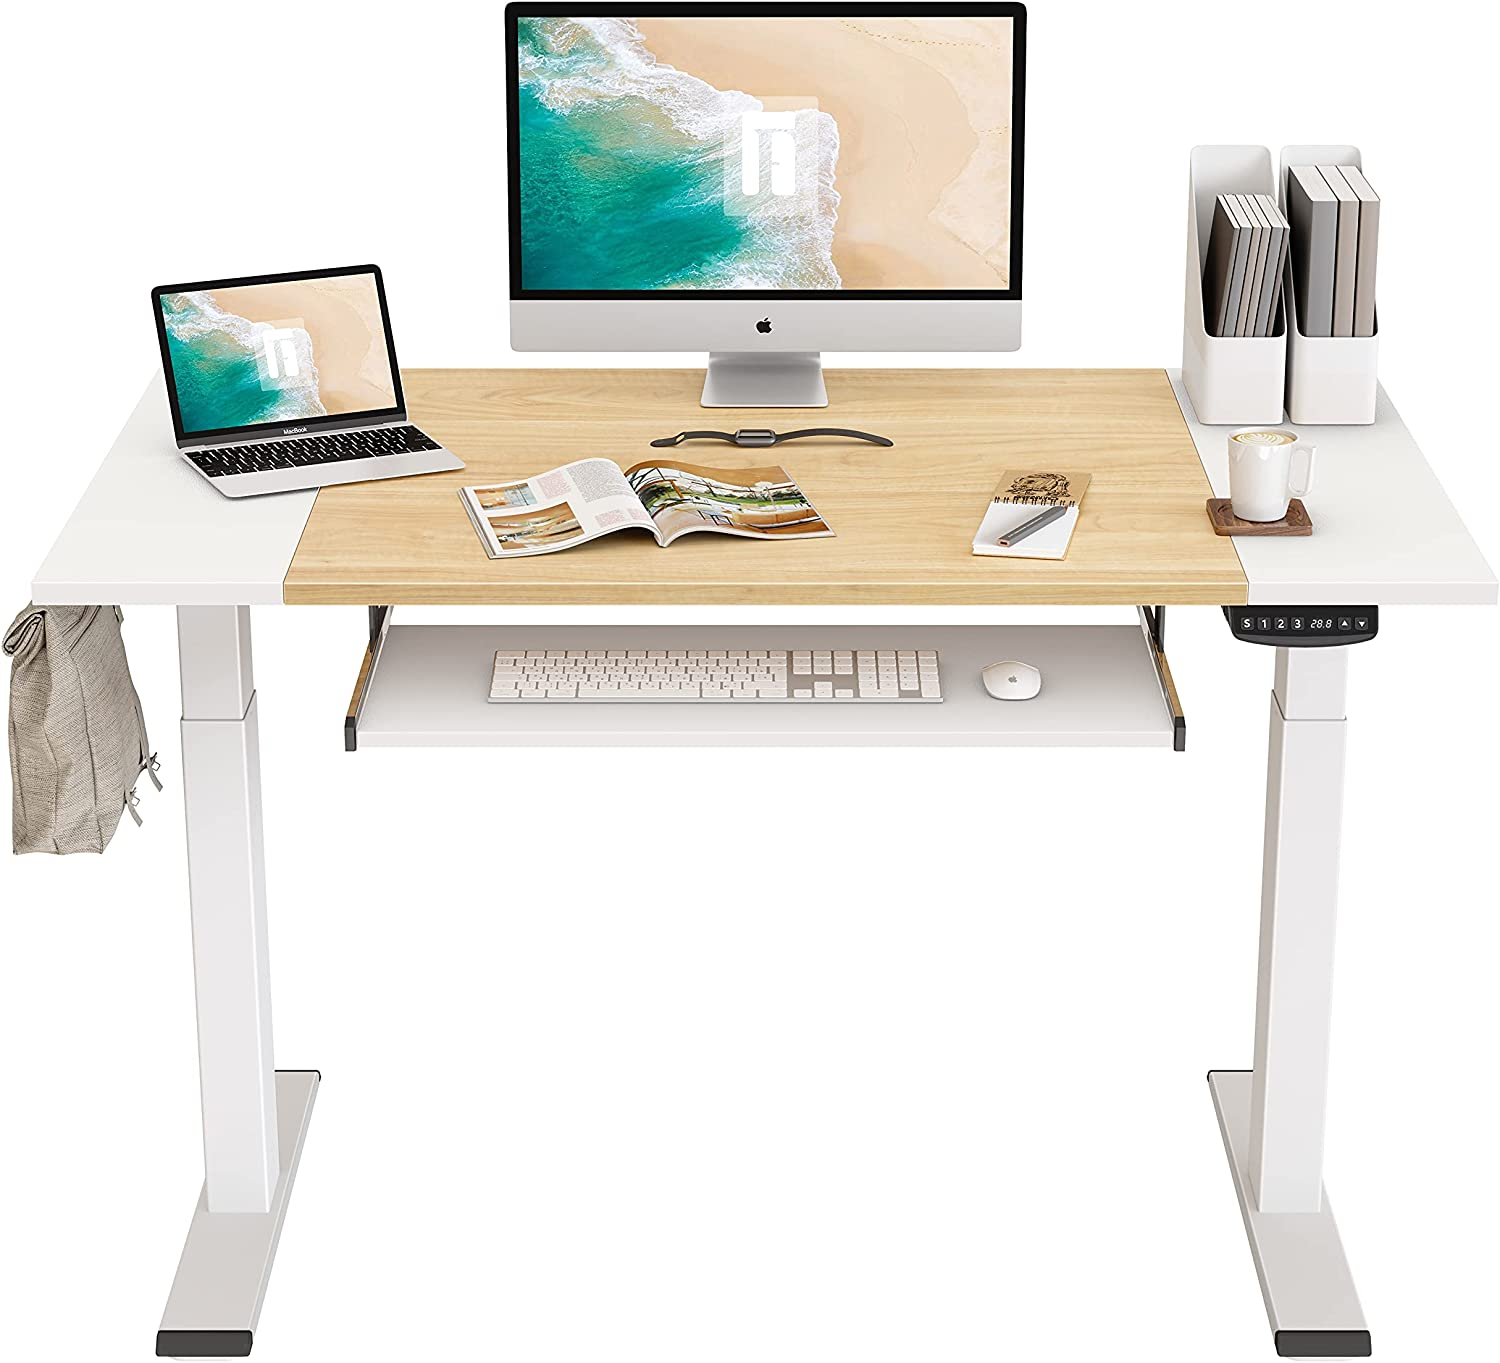 FEZIBO Dual Motor Height Adjustable Electric Standing Desk, 48 x 24 Inches Full Sit Stand Home Office Table with Splice Board, White Frame/White and Natural Top